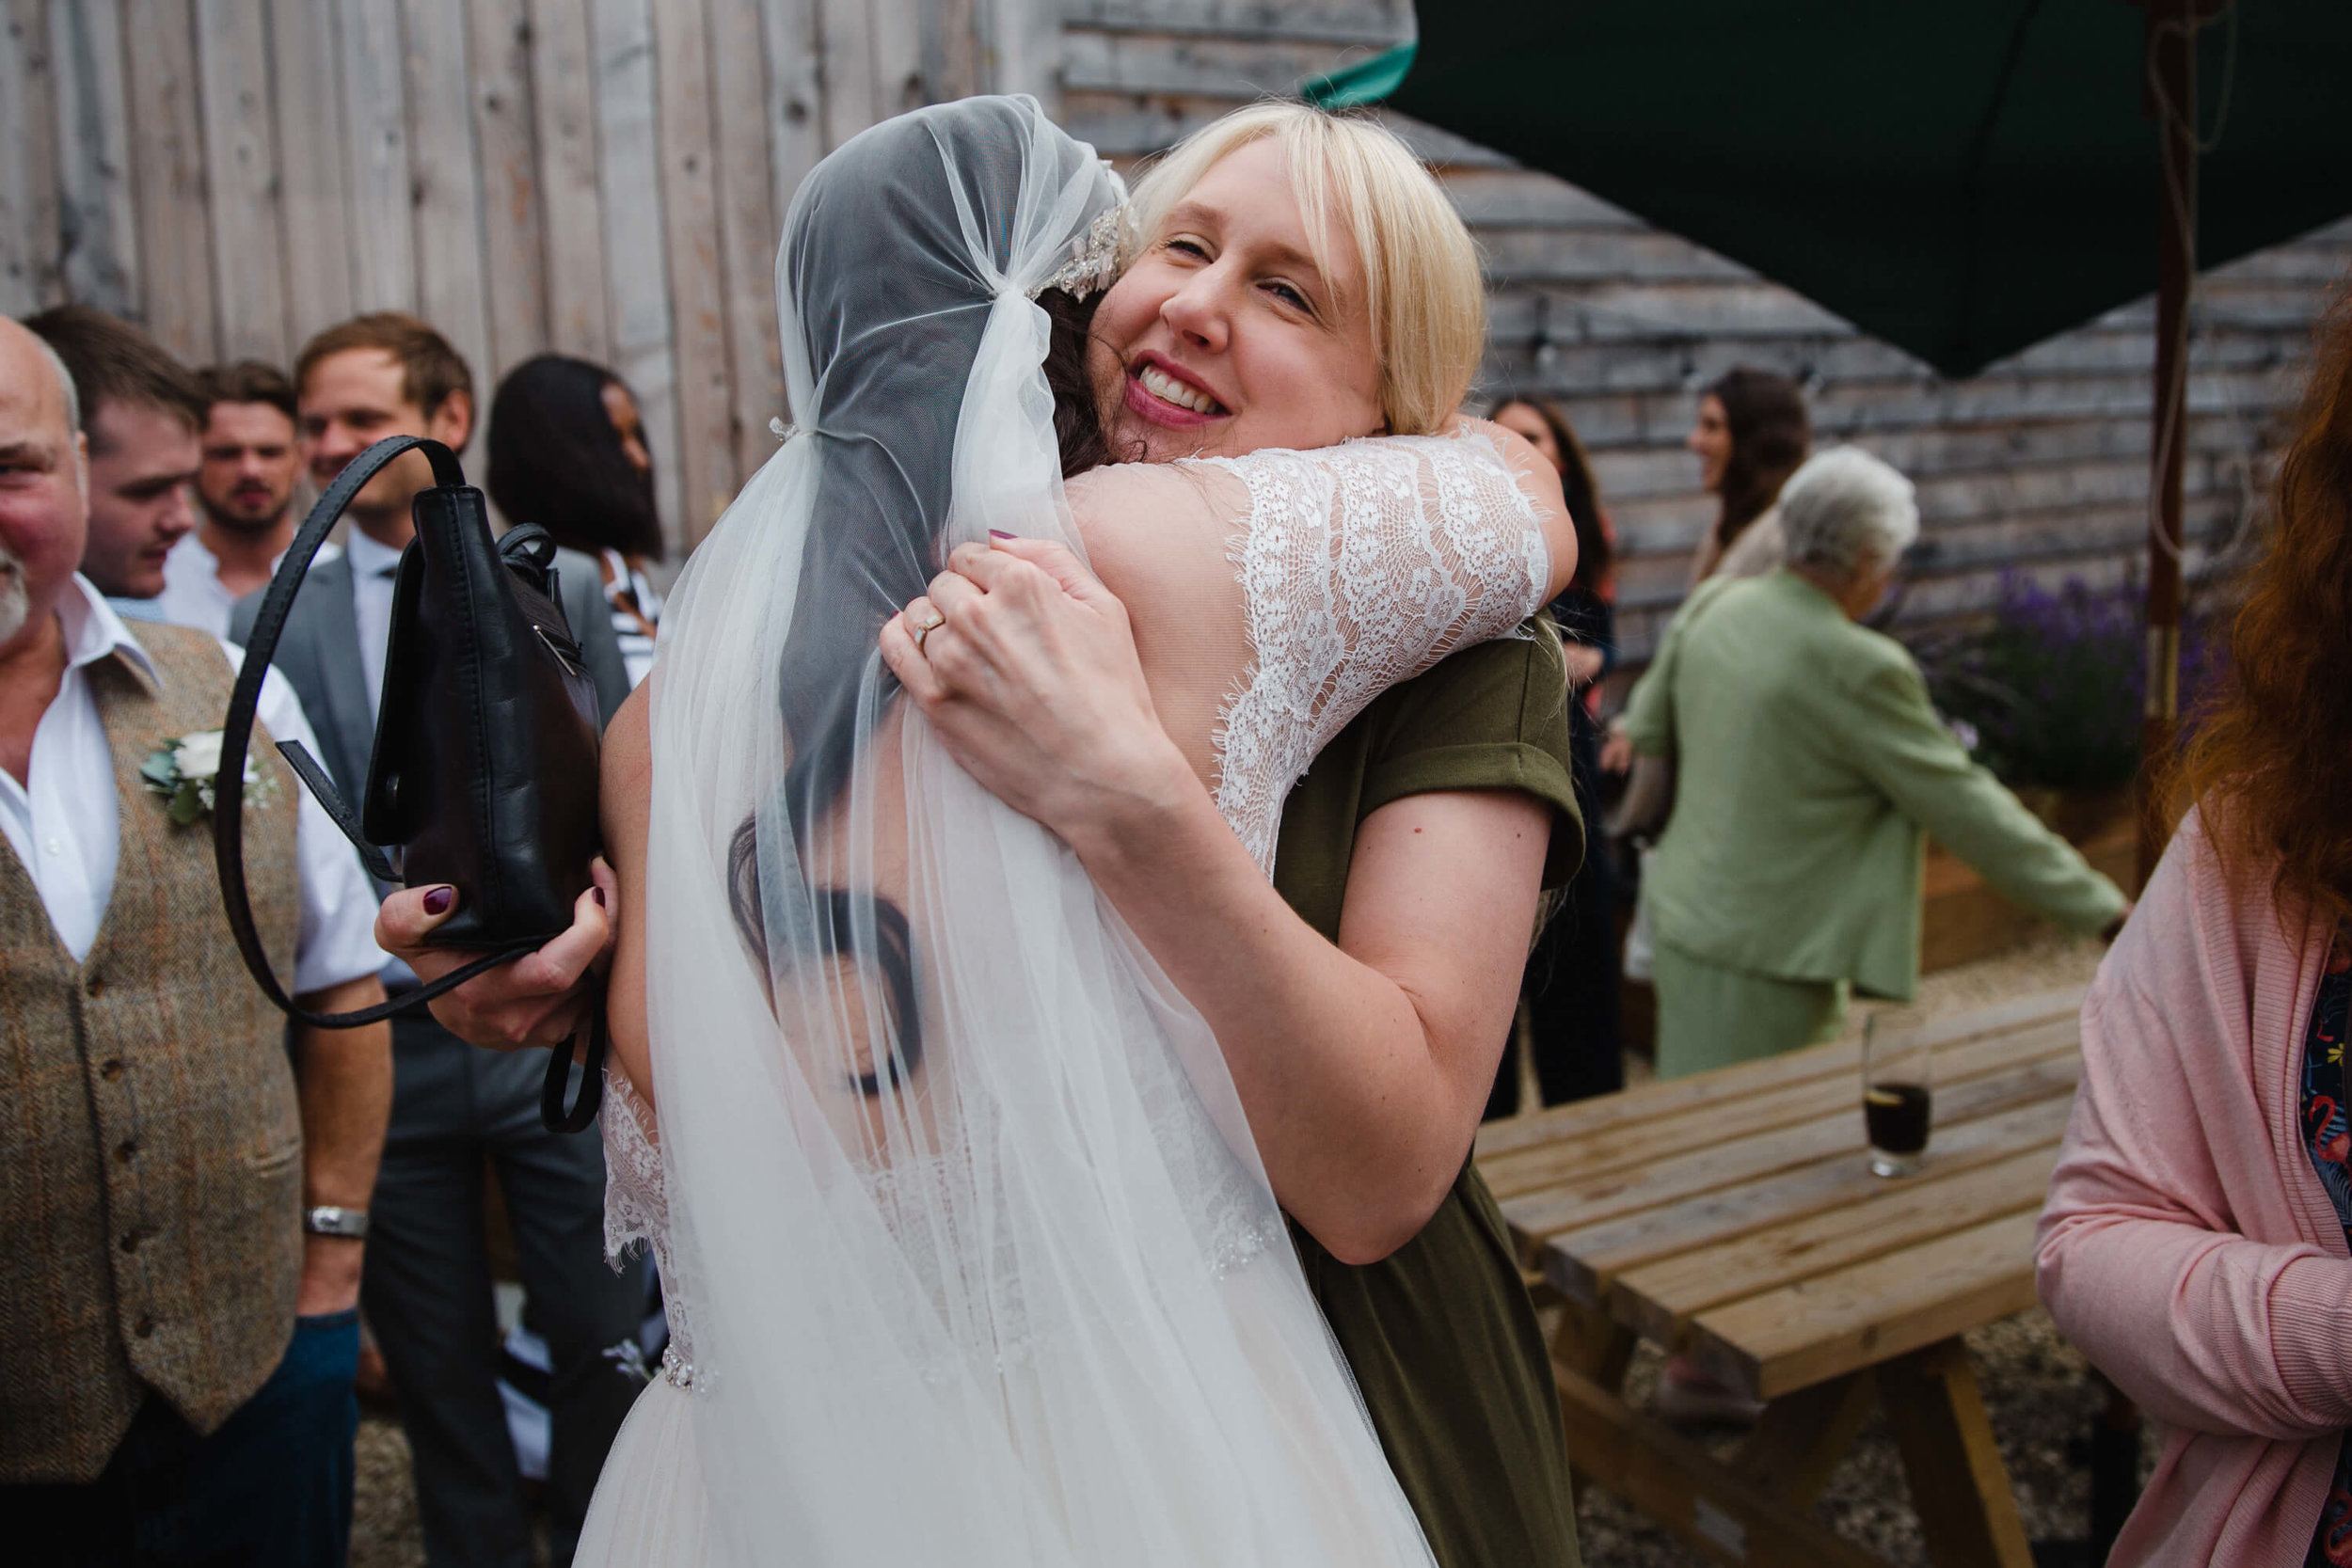 newly married bride shares intimate natural hug with guest